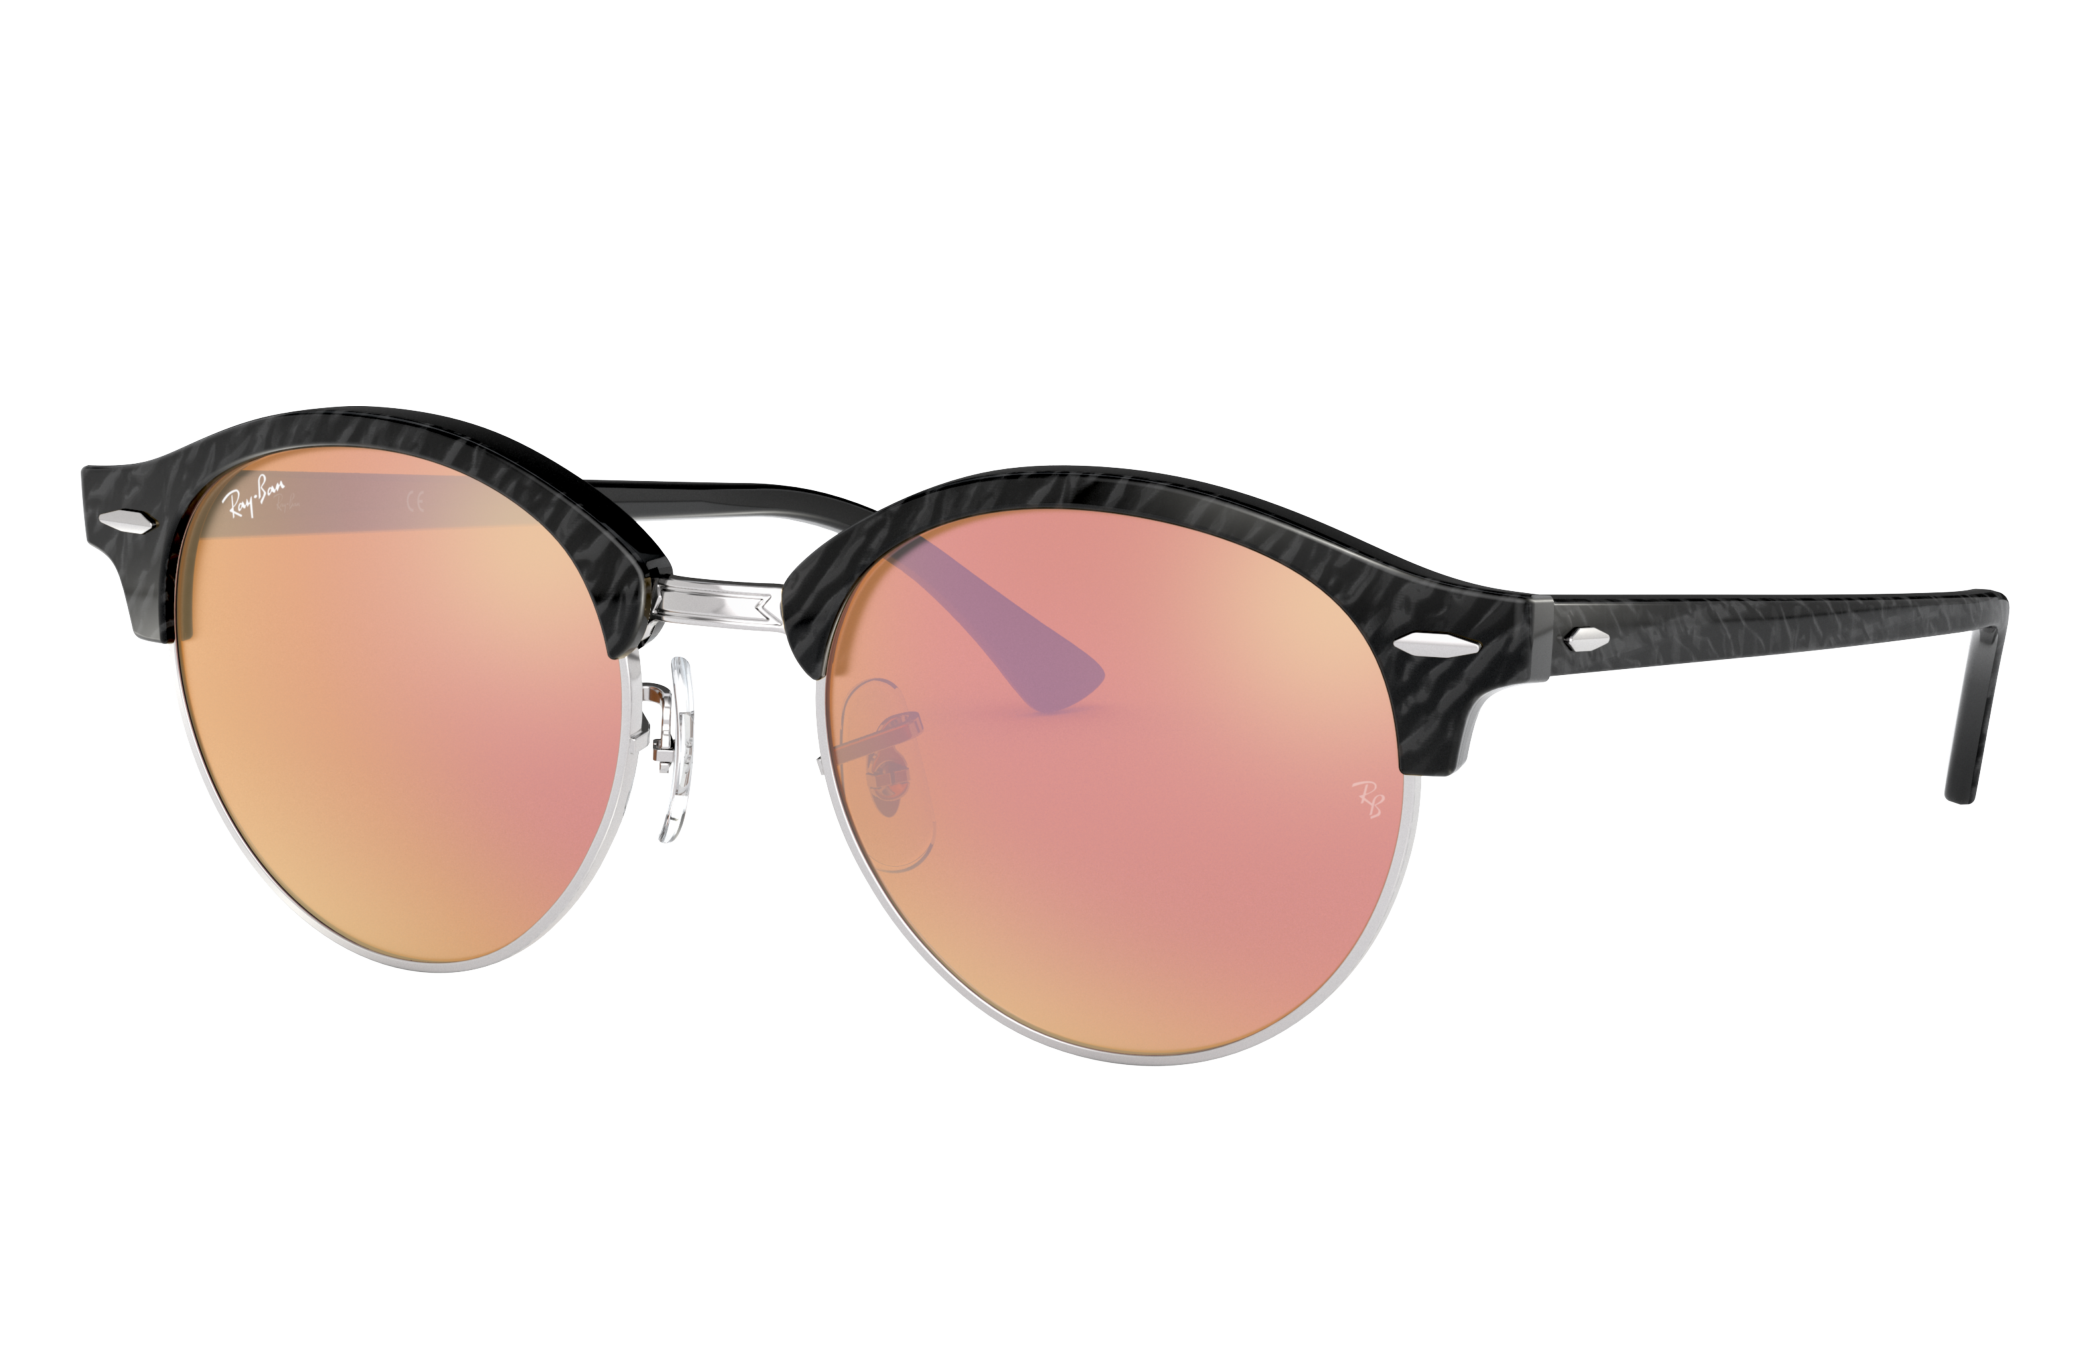 Ray-Ban Clubround Flash Lenses Black, Pink Lenses - RB4246